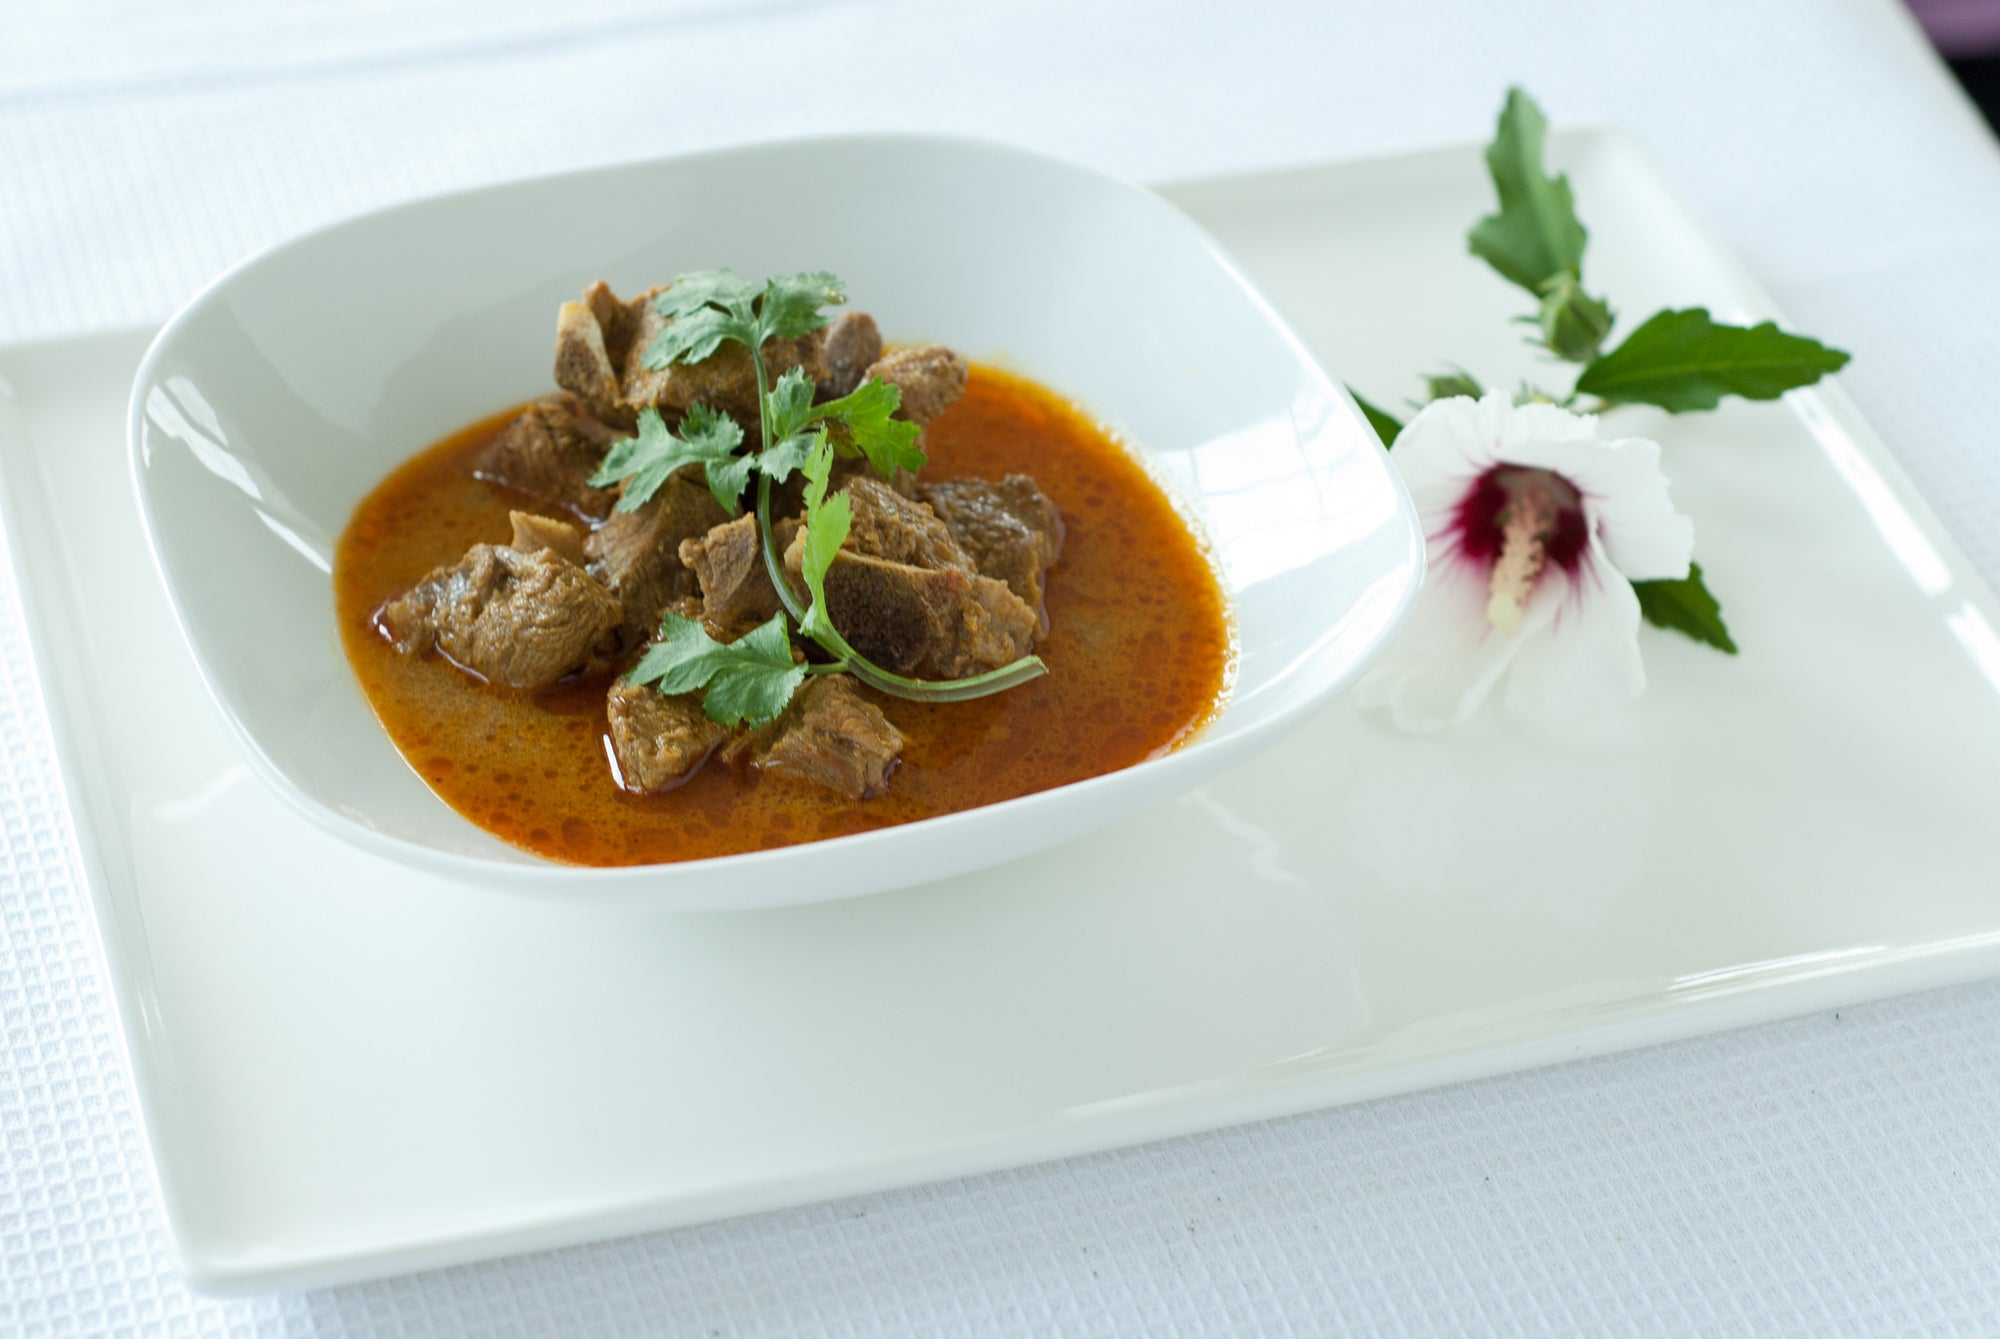 Jaswant's Kitchen Goat or Lamb Curry recipe